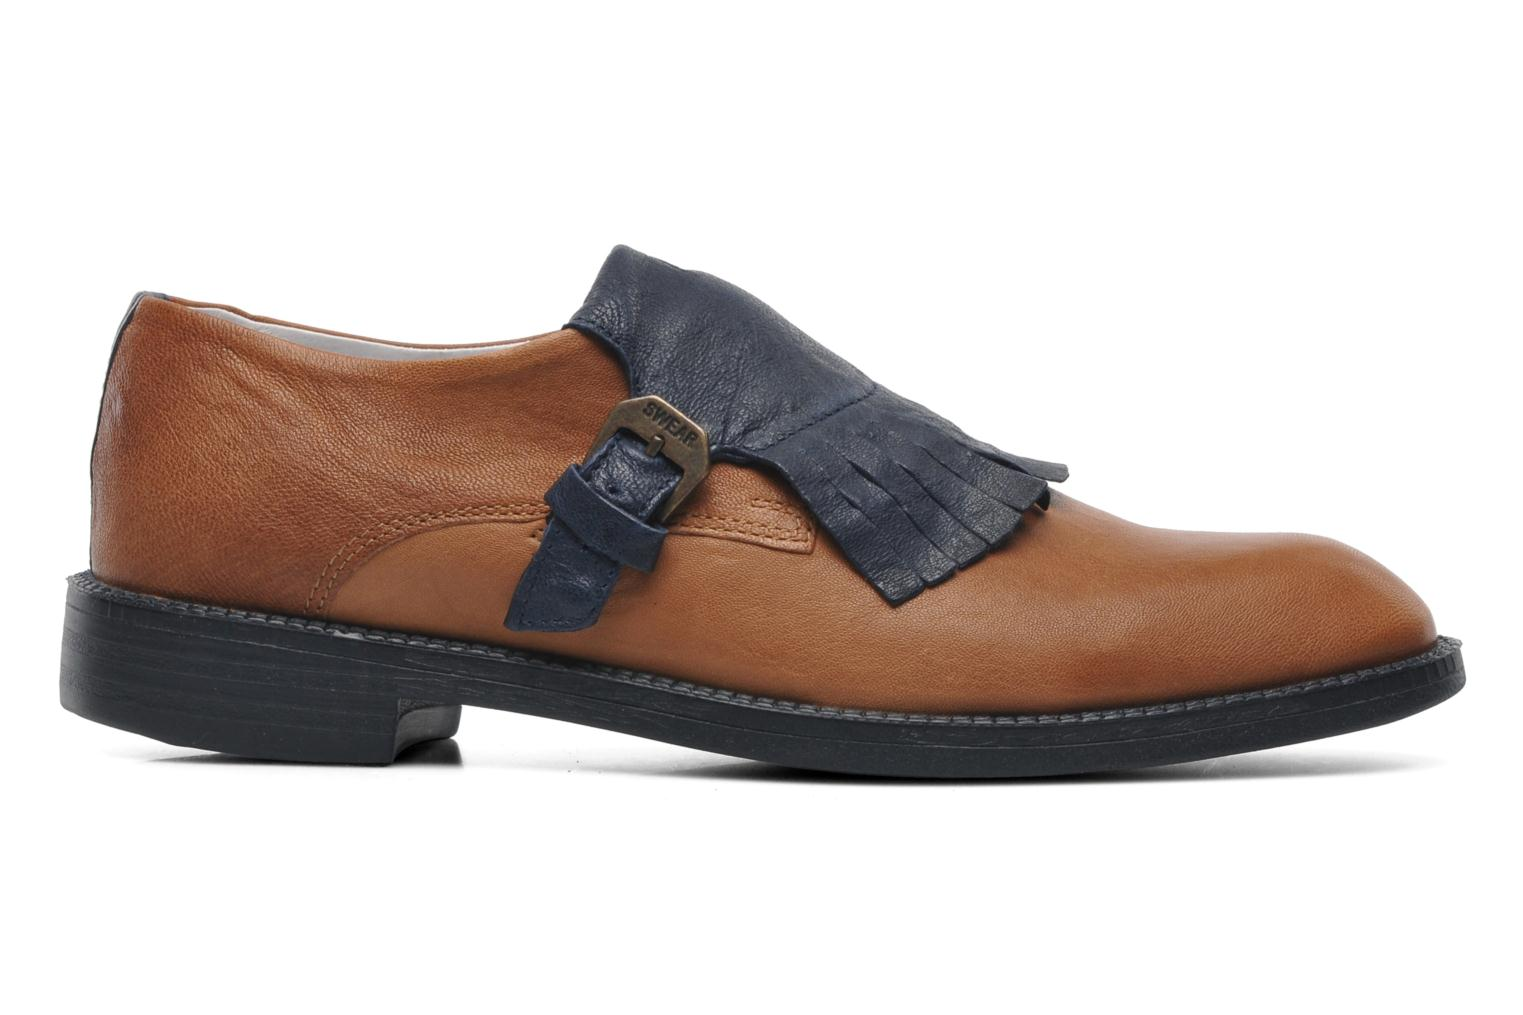 Vienetta 18 Tan/Navy leather